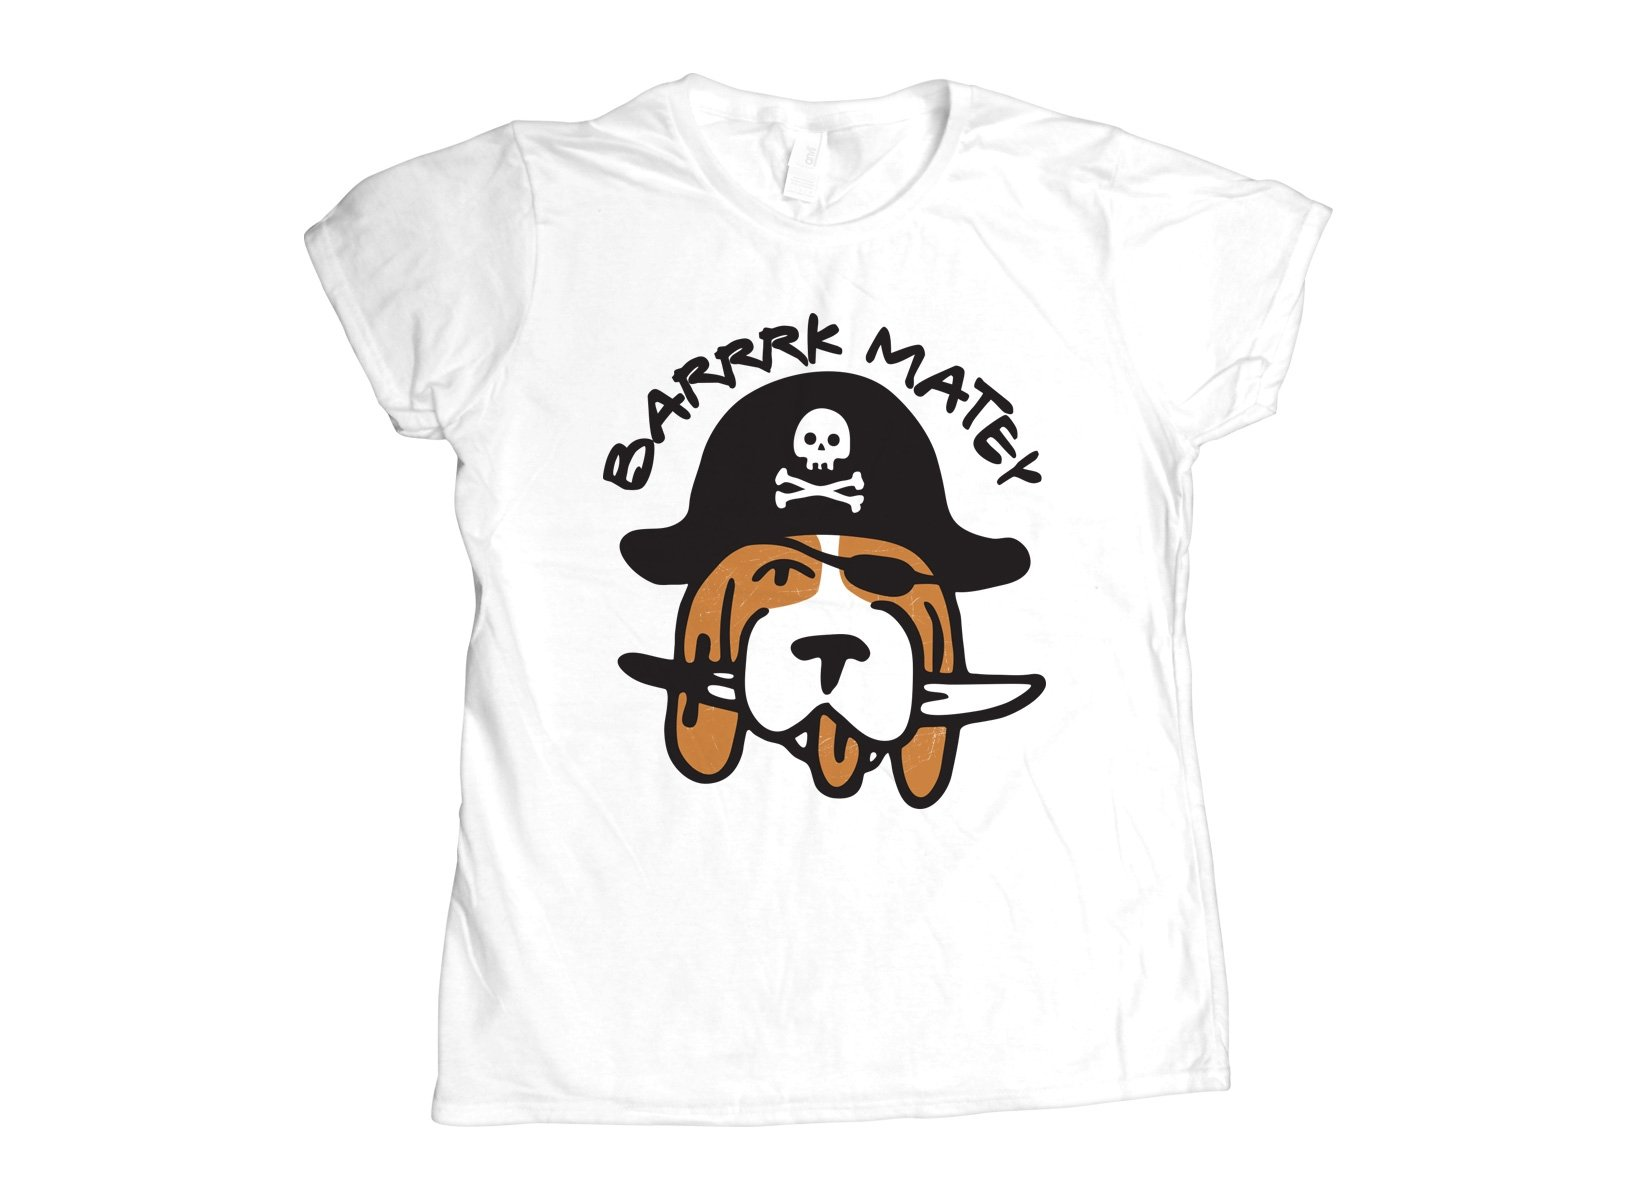 Barrrk Matey on Womens T-Shirt